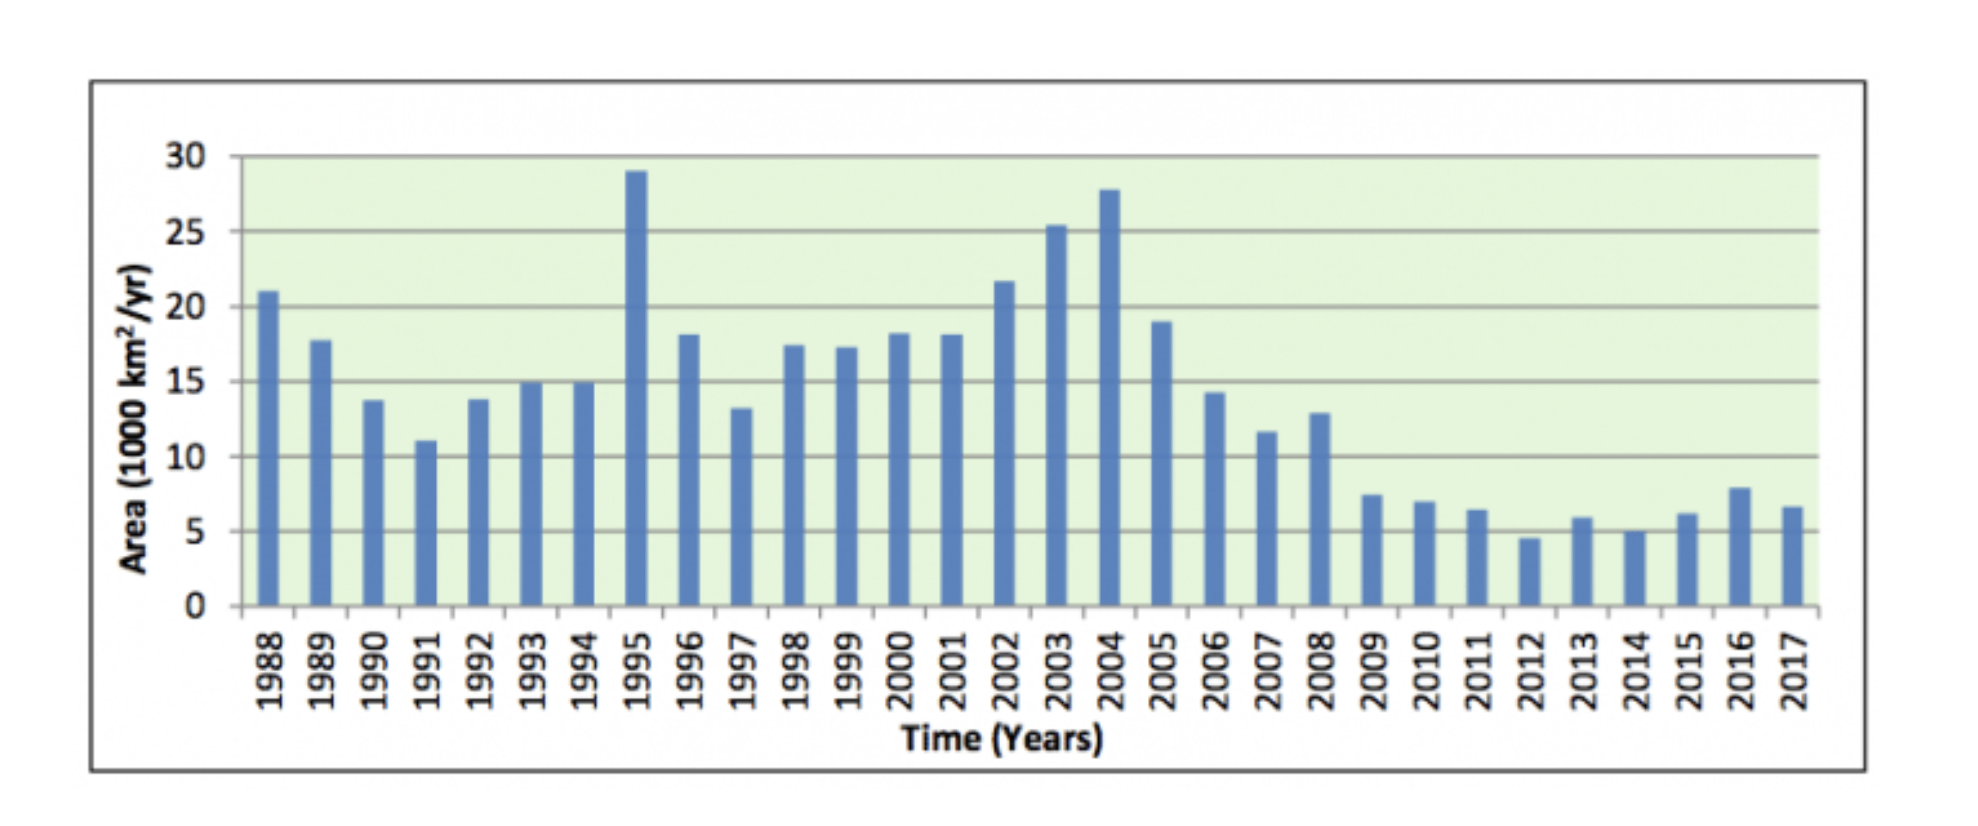 The annual deforestation rate in the Amazon: this has declined significantly since the early 2000's